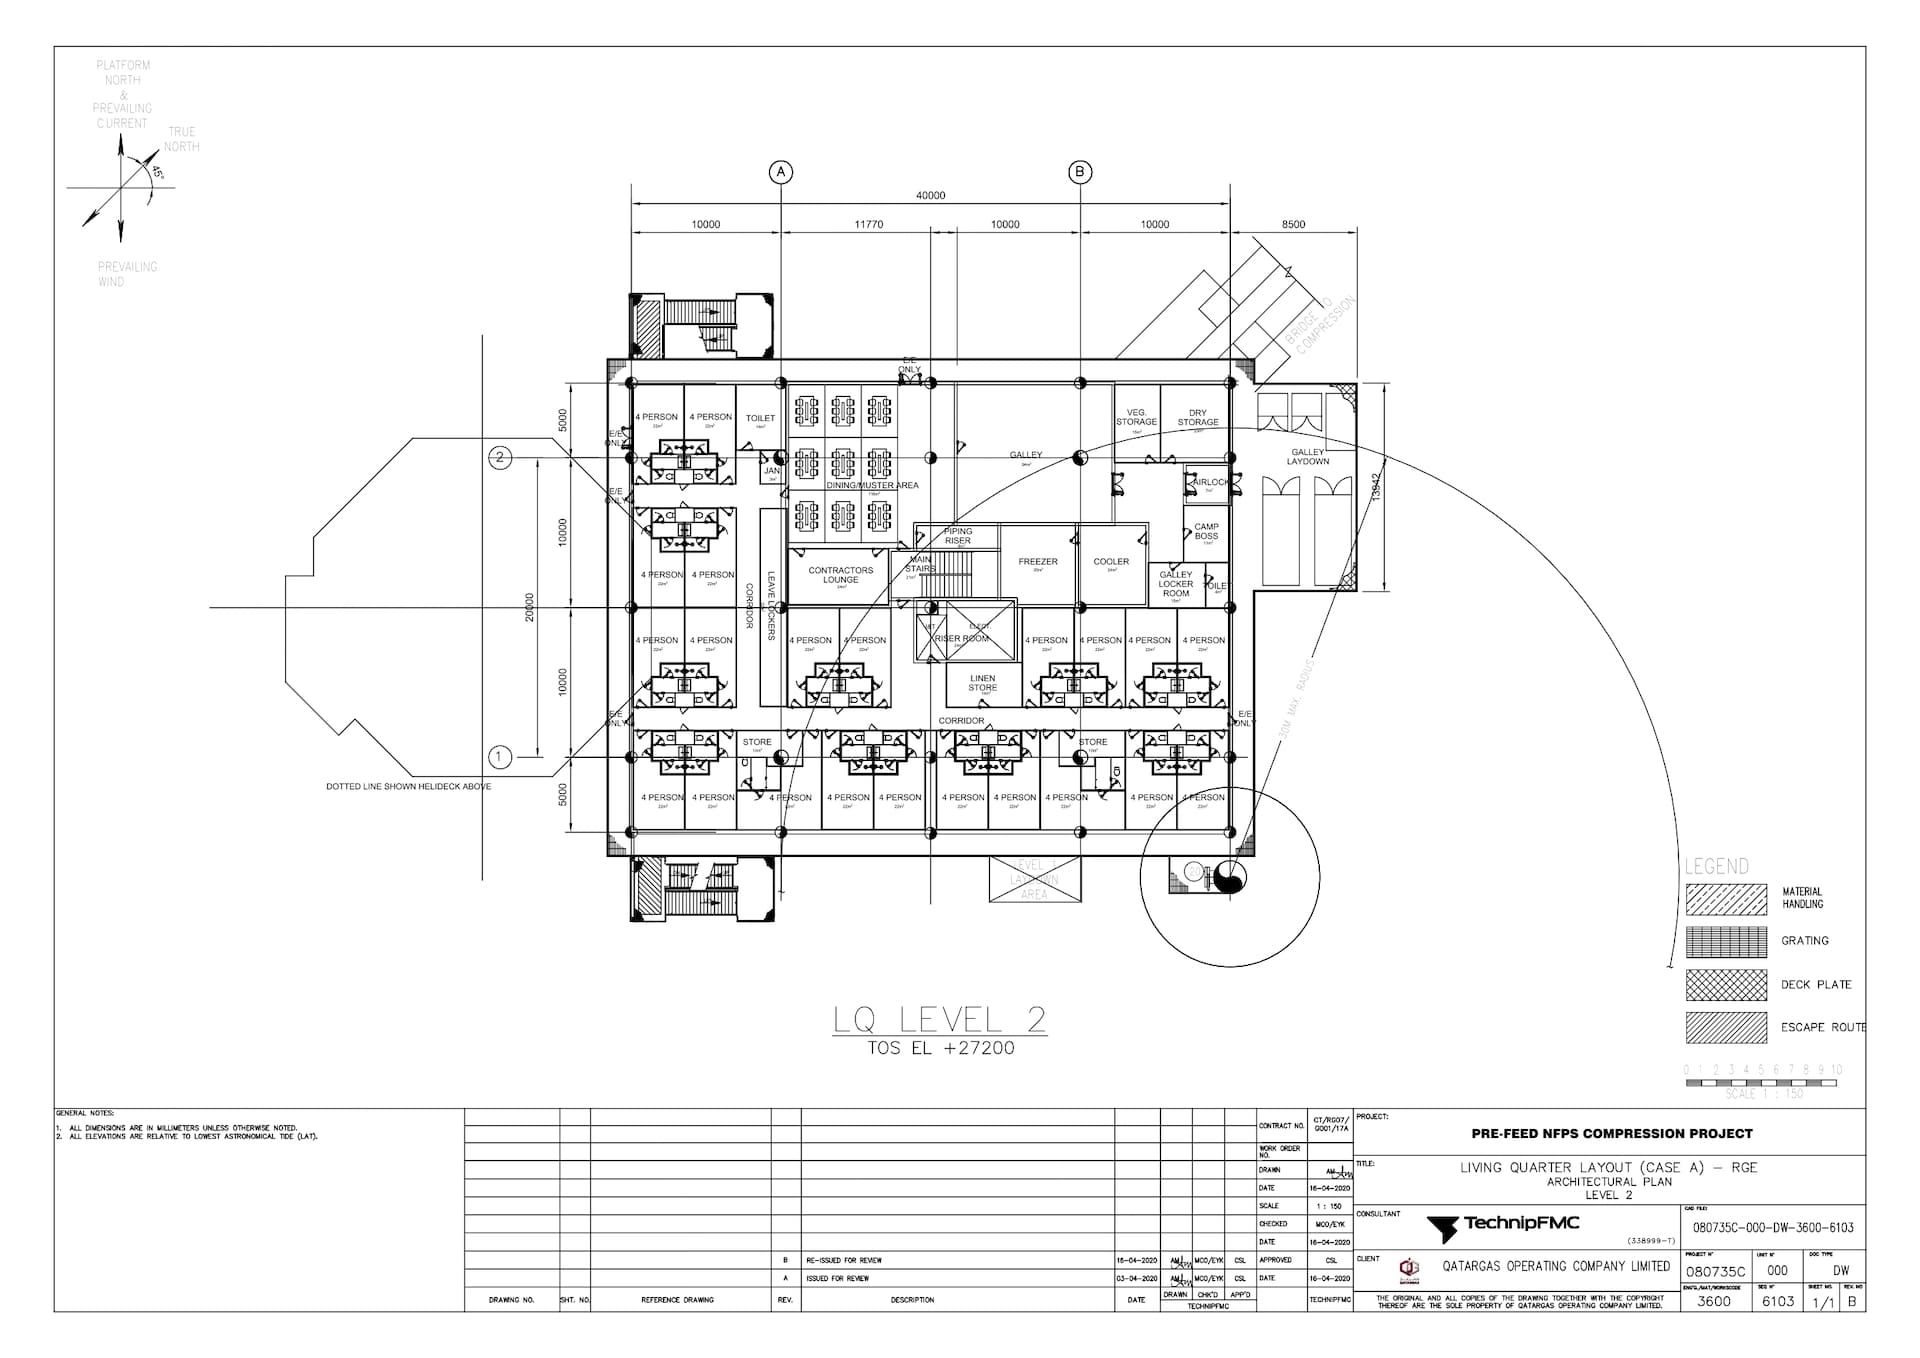 PRE-FEED-NFPS-080735C-000-DW-3600-6103_Rev B LQ Layout (Case A) - RGE - Architectural Plan - Level 2_page-0001